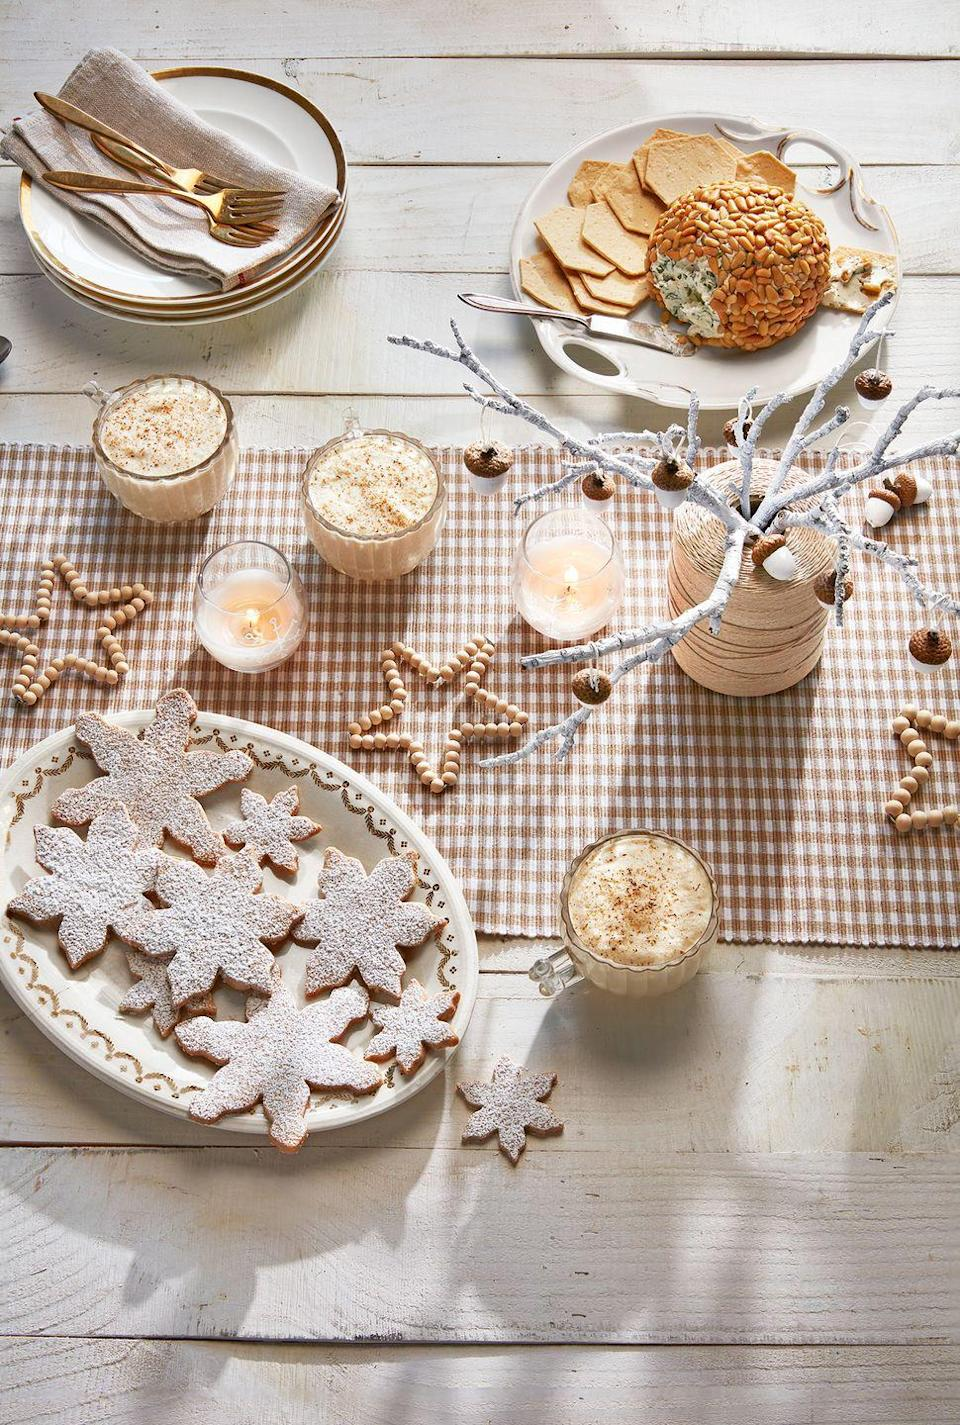 """<p>Add more visual interest to your table runner by using wooden beads to make star-shaped decorative accents. </p><p><a class=""""link rapid-noclick-resp"""" href=""""https://go.redirectingat.com?id=74968X1596630&url=https%3A%2F%2Fwww.michaels.com%2F0.75in-round-wood-beads-by-artminds%2F10049503.html&sref=https%3A%2F%2Fwww.goodhousekeeping.com%2Fholidays%2Fchristmas-ideas%2Fhow-to%2Fg2196%2Fchristmas-table-settings%2F"""" rel=""""nofollow noopener"""" target=""""_blank"""" data-ylk=""""slk:SHOP WOODEN BEADS"""">SHOP WOODEN BEADS</a></p>"""